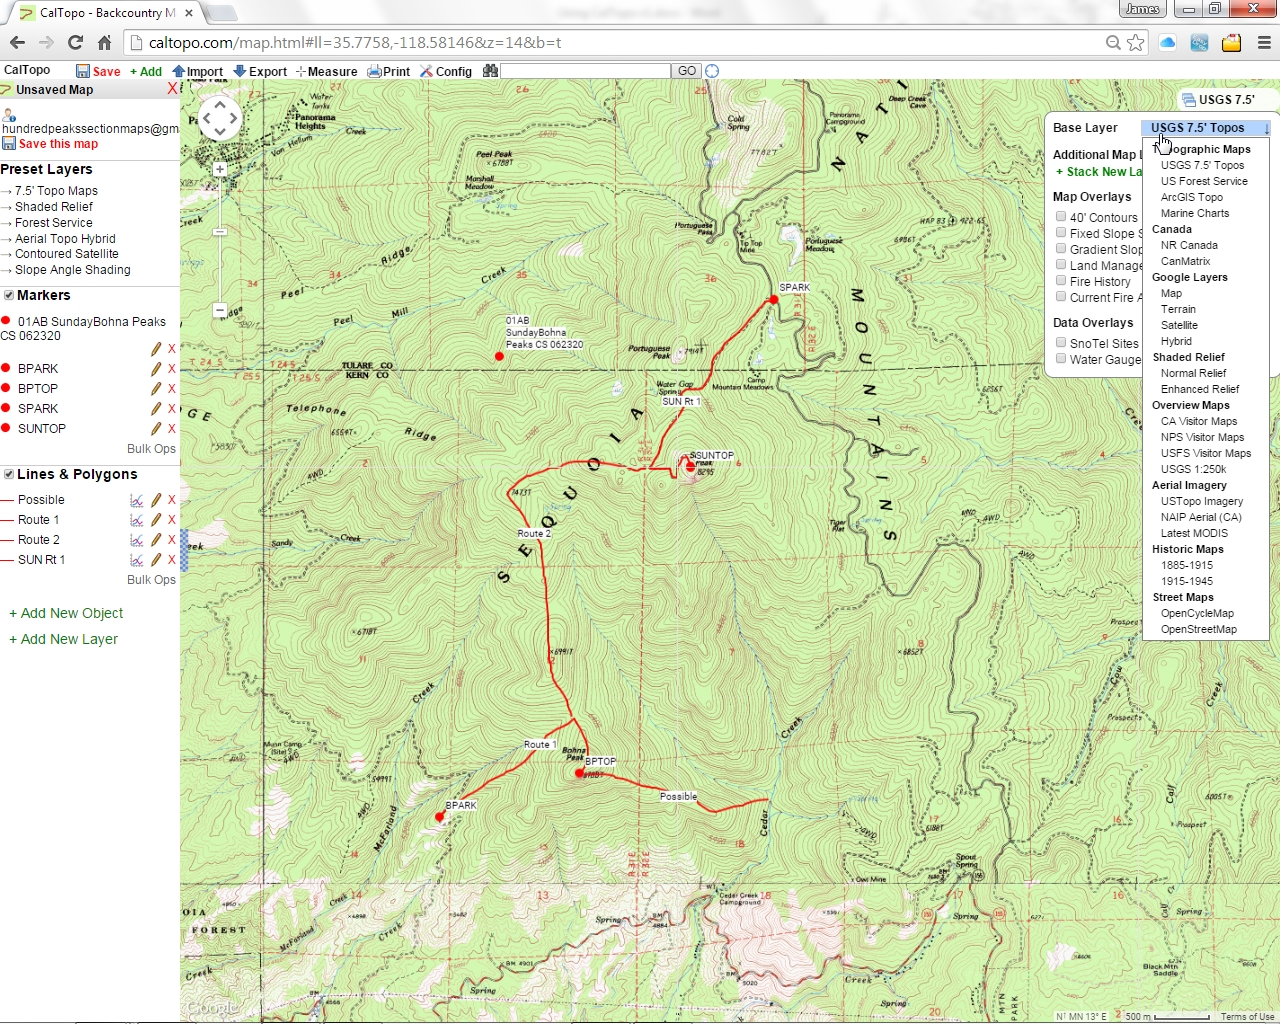 USING CALTOPO WITH HPS MAPS - Us forest service ecoregion map